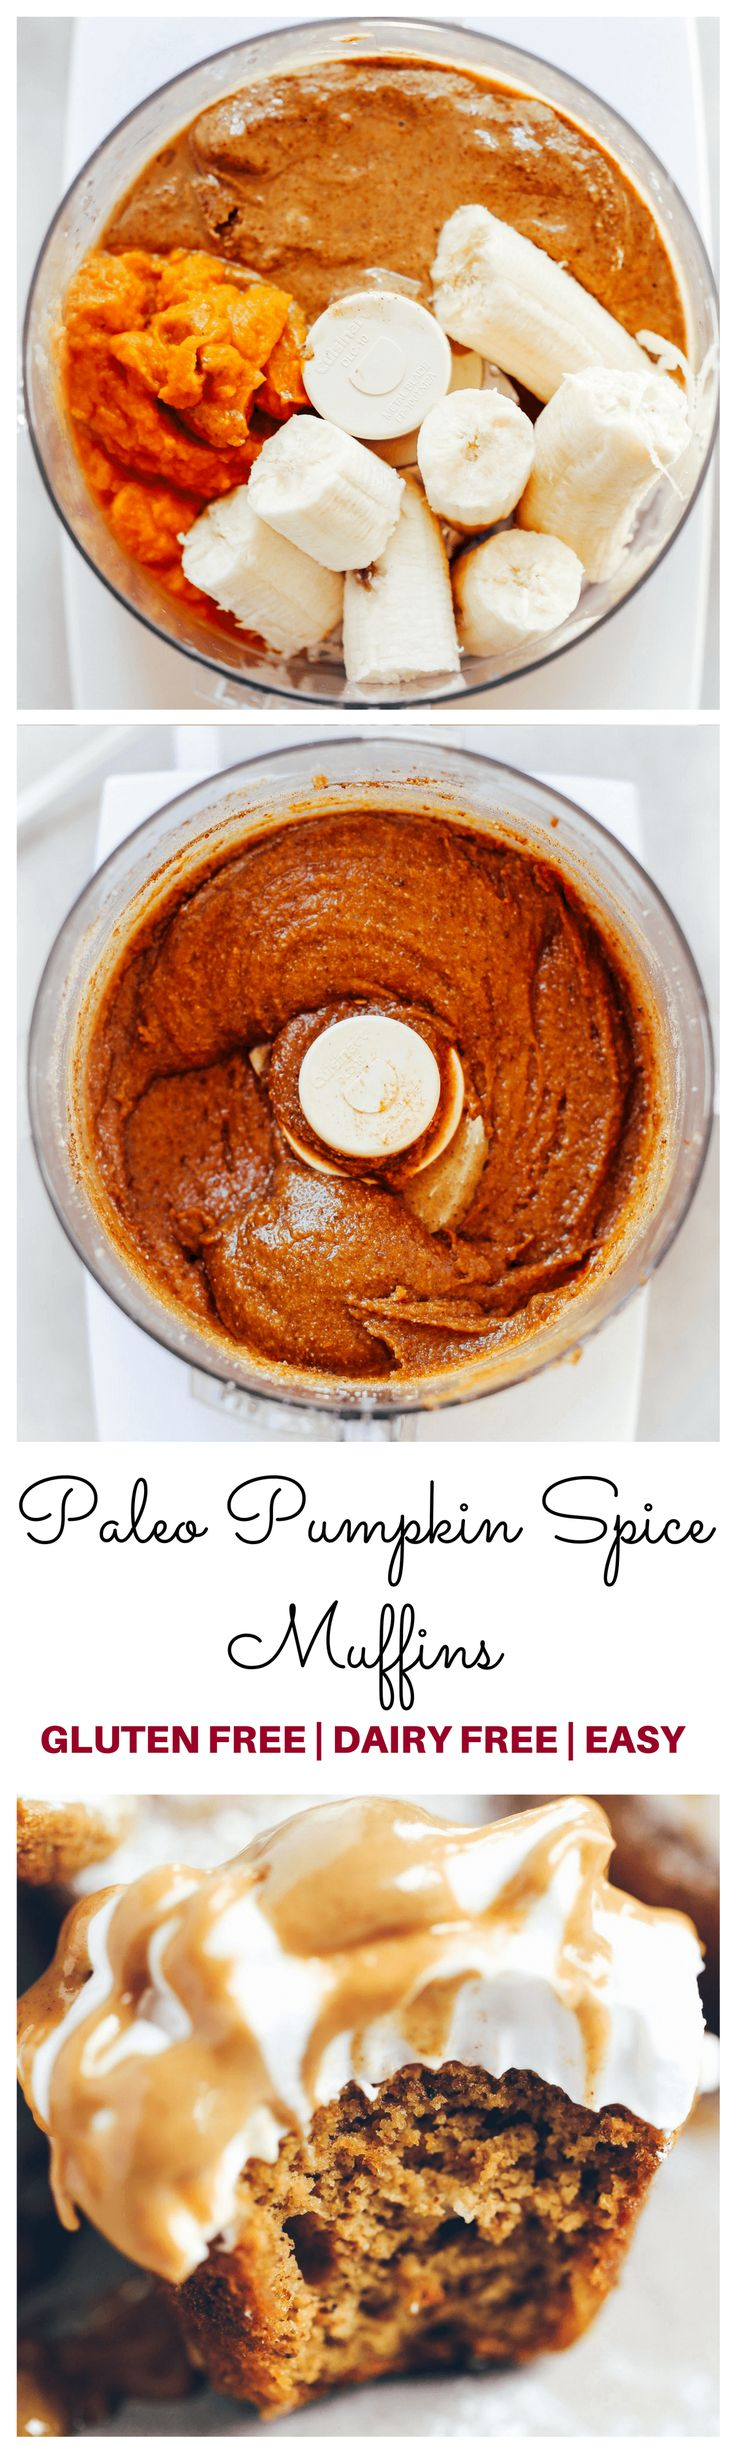 Paleo Pumpkin Spice Protein Muffins / makes 24 mini muffins / 1 mini muffin = 71 cal, 5g F, 5g C, 3g P / pumpkin, almond butter, almond flour, banana, eg, collagen peptides, maple syrup, coconut flour